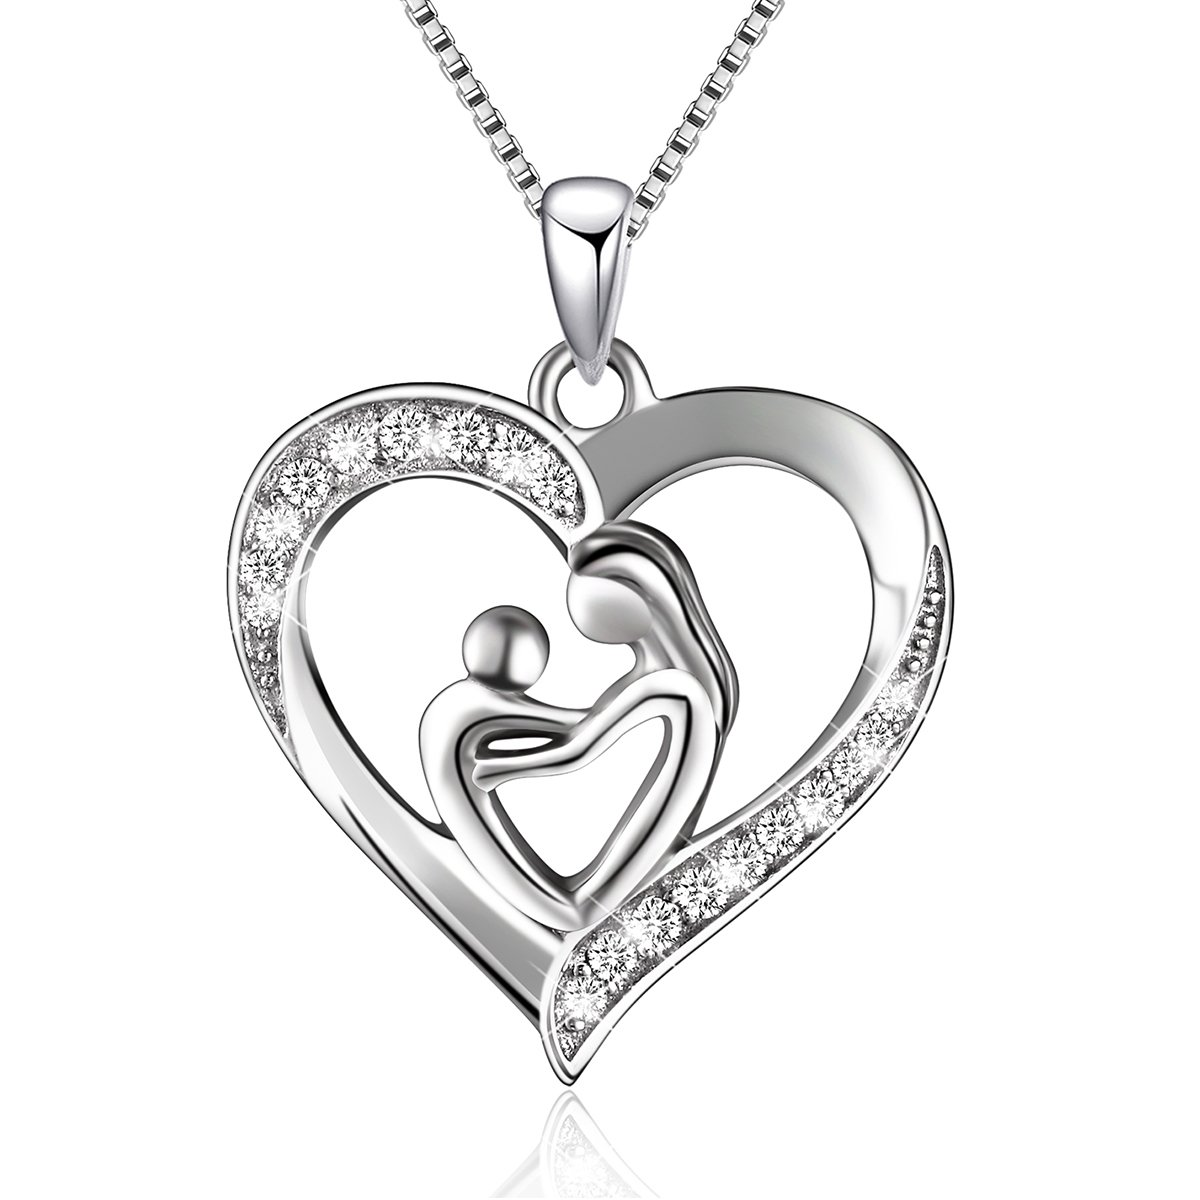 Sterling Silver Mother and Child Love Heart Pendant Necklace, Box chain 18' Box chain 18' BLOVIN JEWELRY HZ50706